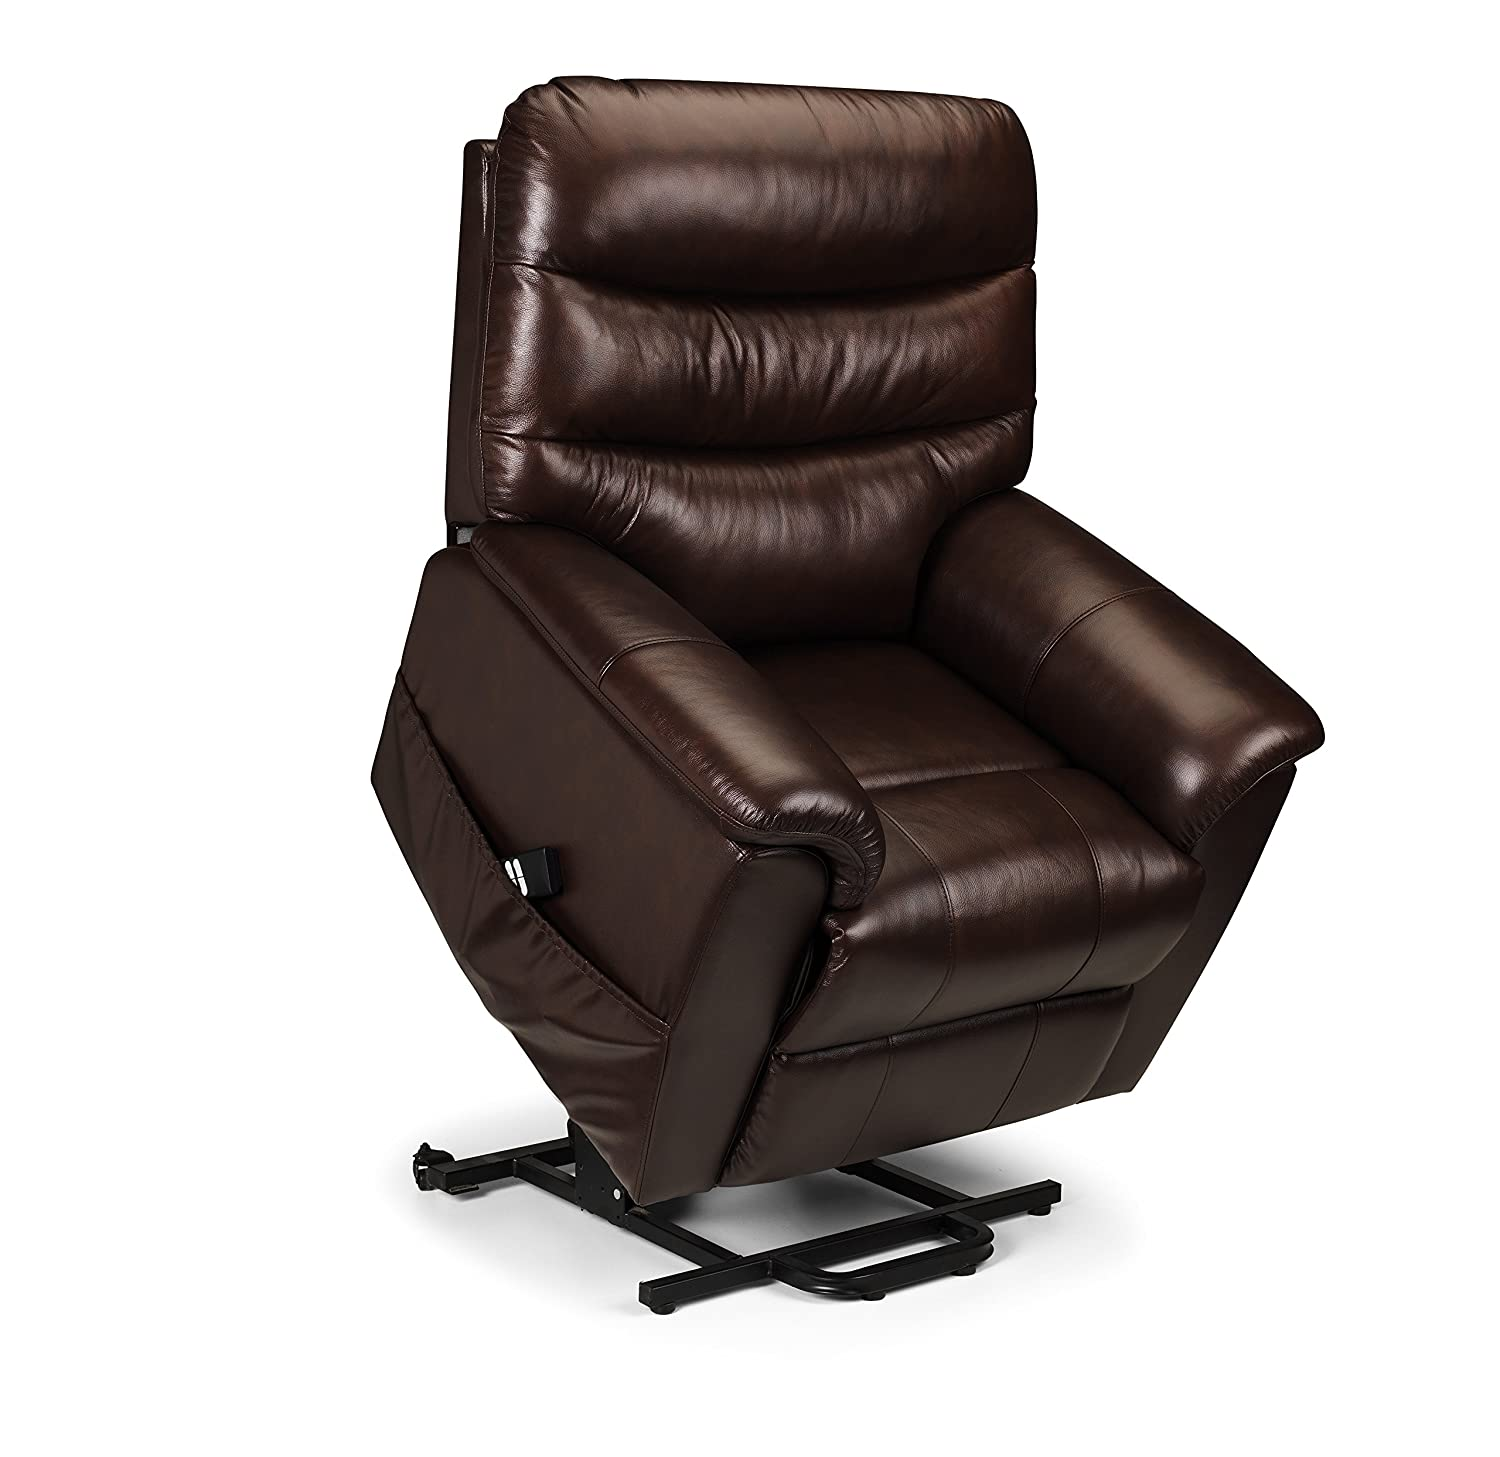 Julian Bowen Pullman Leather Dual Motor Rise and Recline Chair Chestnut Brown Amazon.co.uk Kitchen u0026 Home  sc 1 st  Amazon UK : riser recliner chairs second hand - islam-shia.org